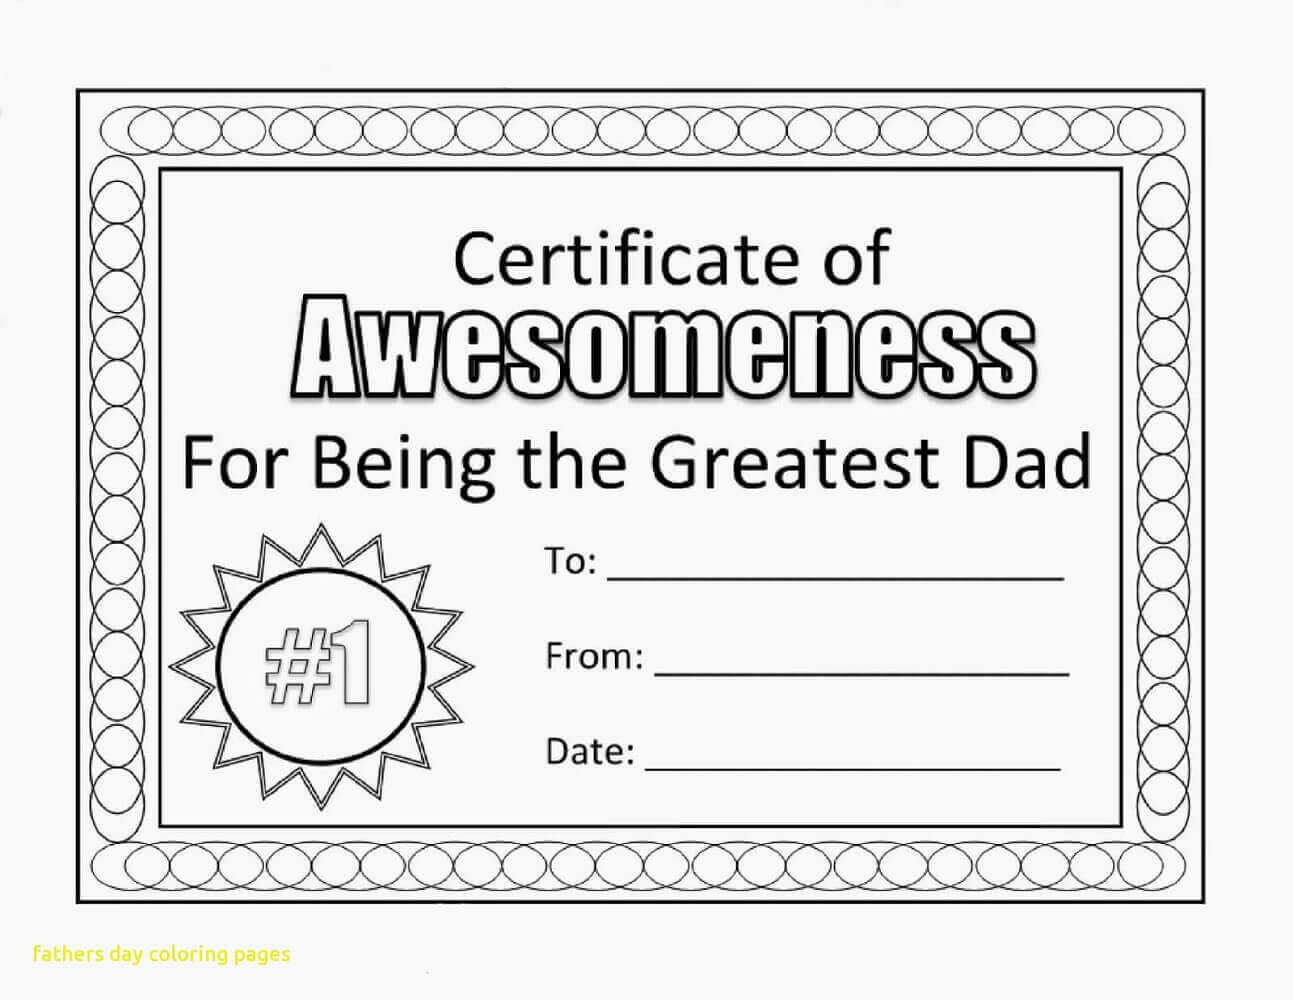 Fathers Day Certificate Coloring Pages Free